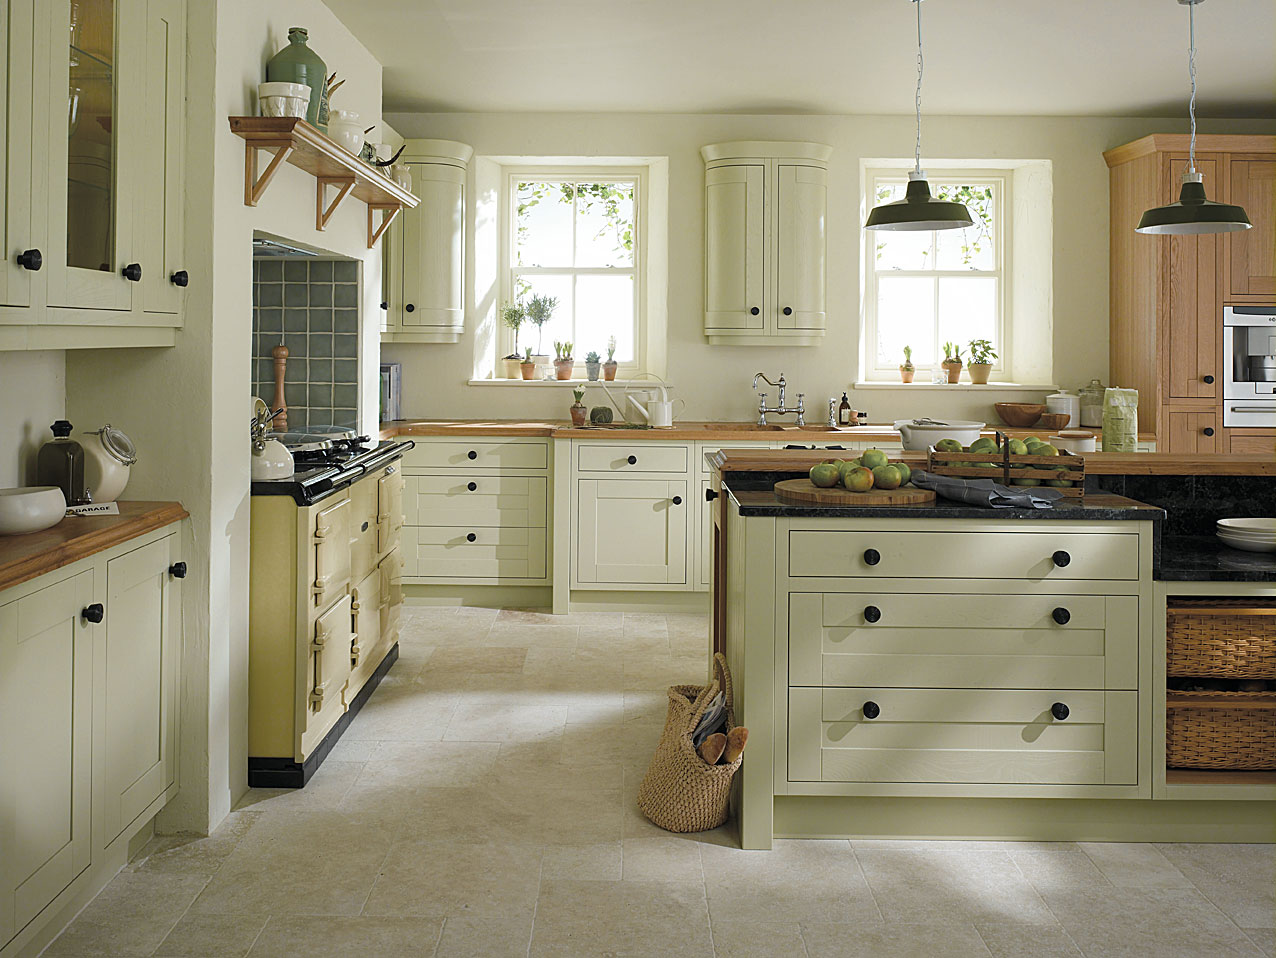 Kitchen Storage Ideas Design Cabinets Islands Kitchens Traditional White Antique Best Classic